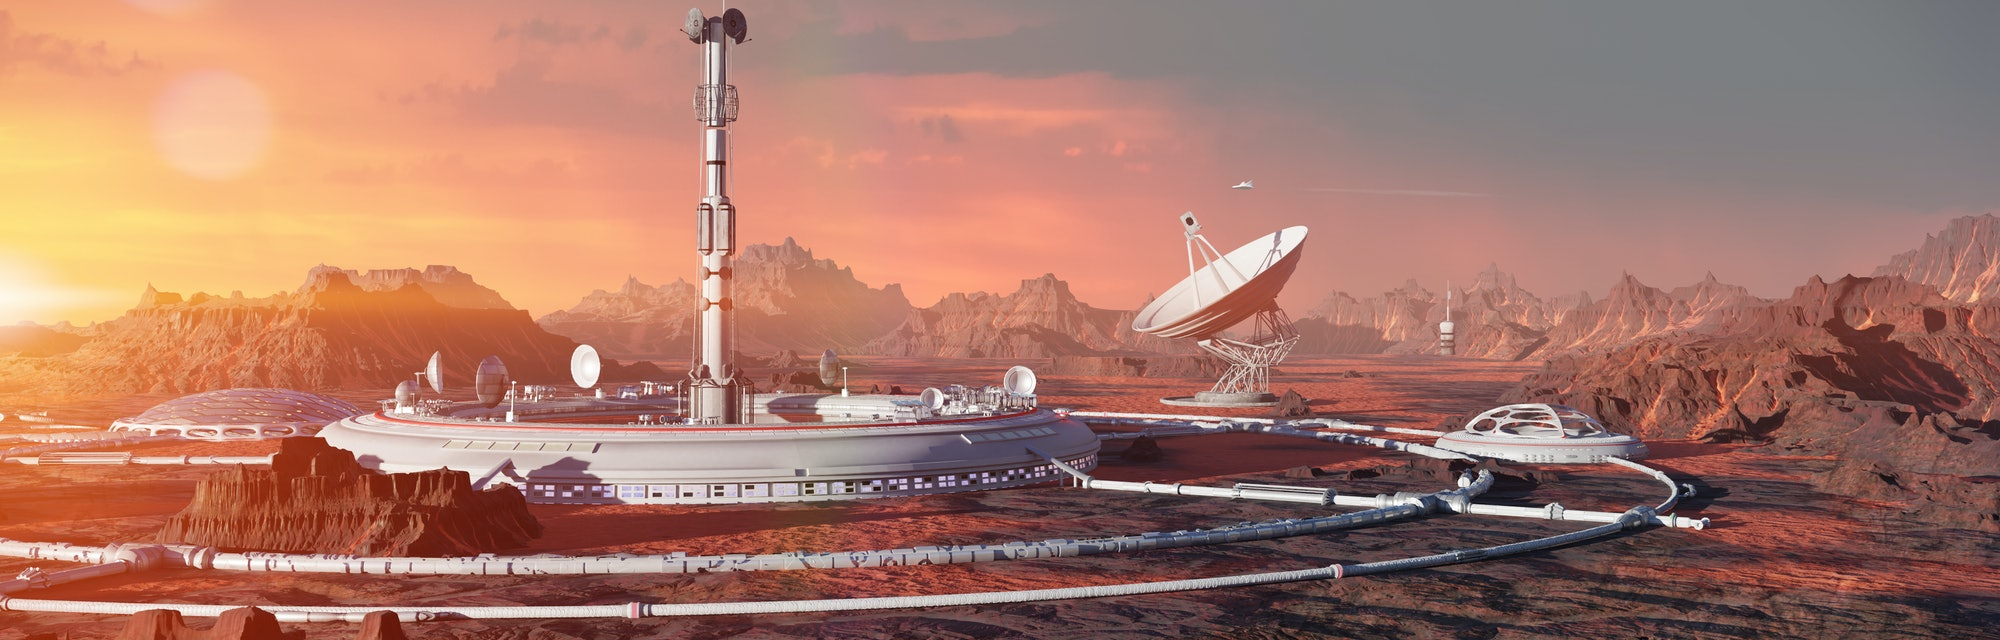 station on Mars surface, first martian colony in desert landscape on the red planet (3d space illust...